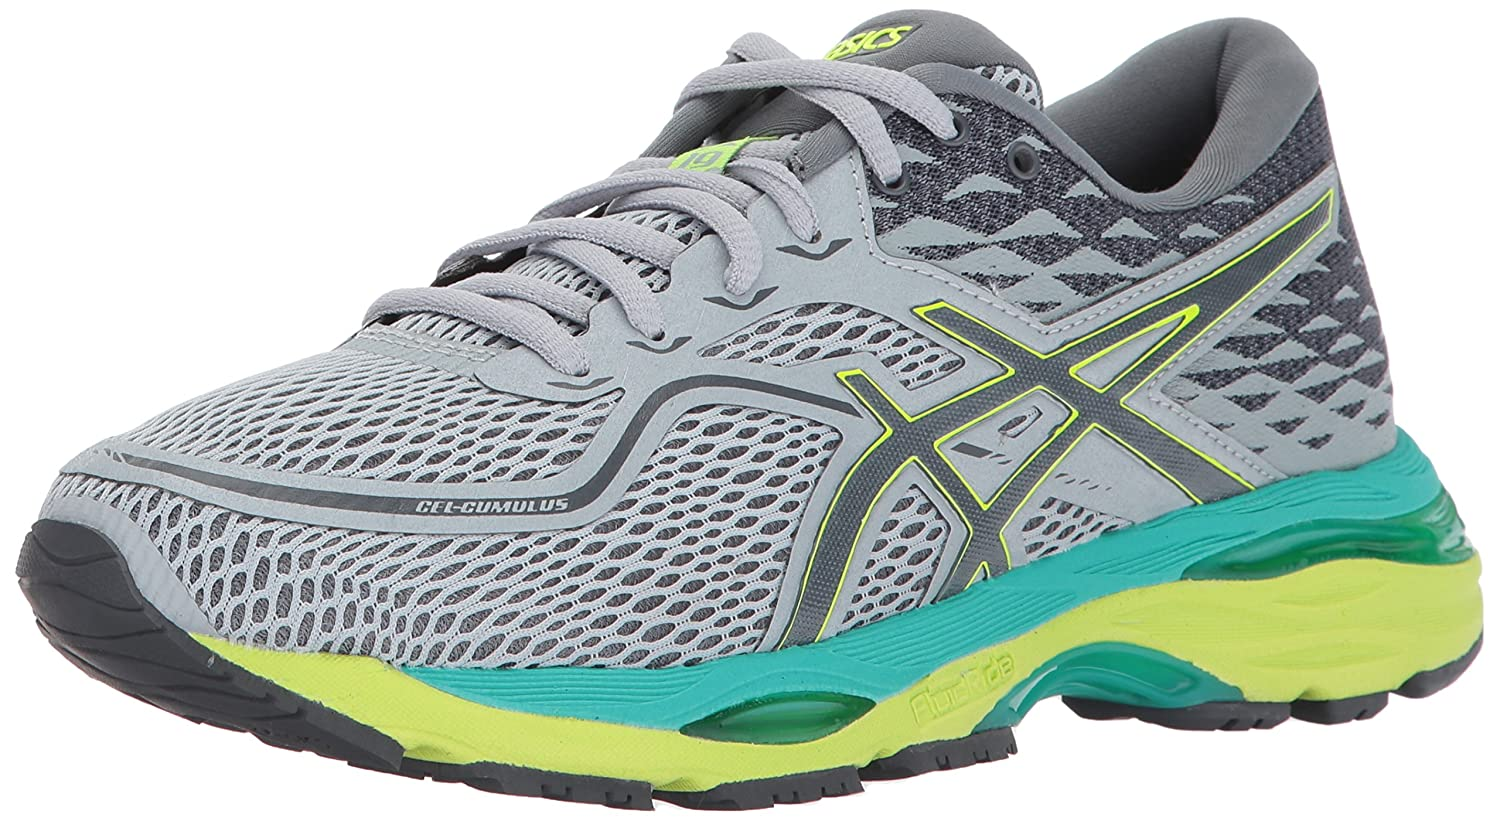 ASICS Women's Gel-Cumulus 19 Running Shoe B01N8TJKJ7 11.5 B(M) US|Mid Grey/Carbon/Safety Yellow